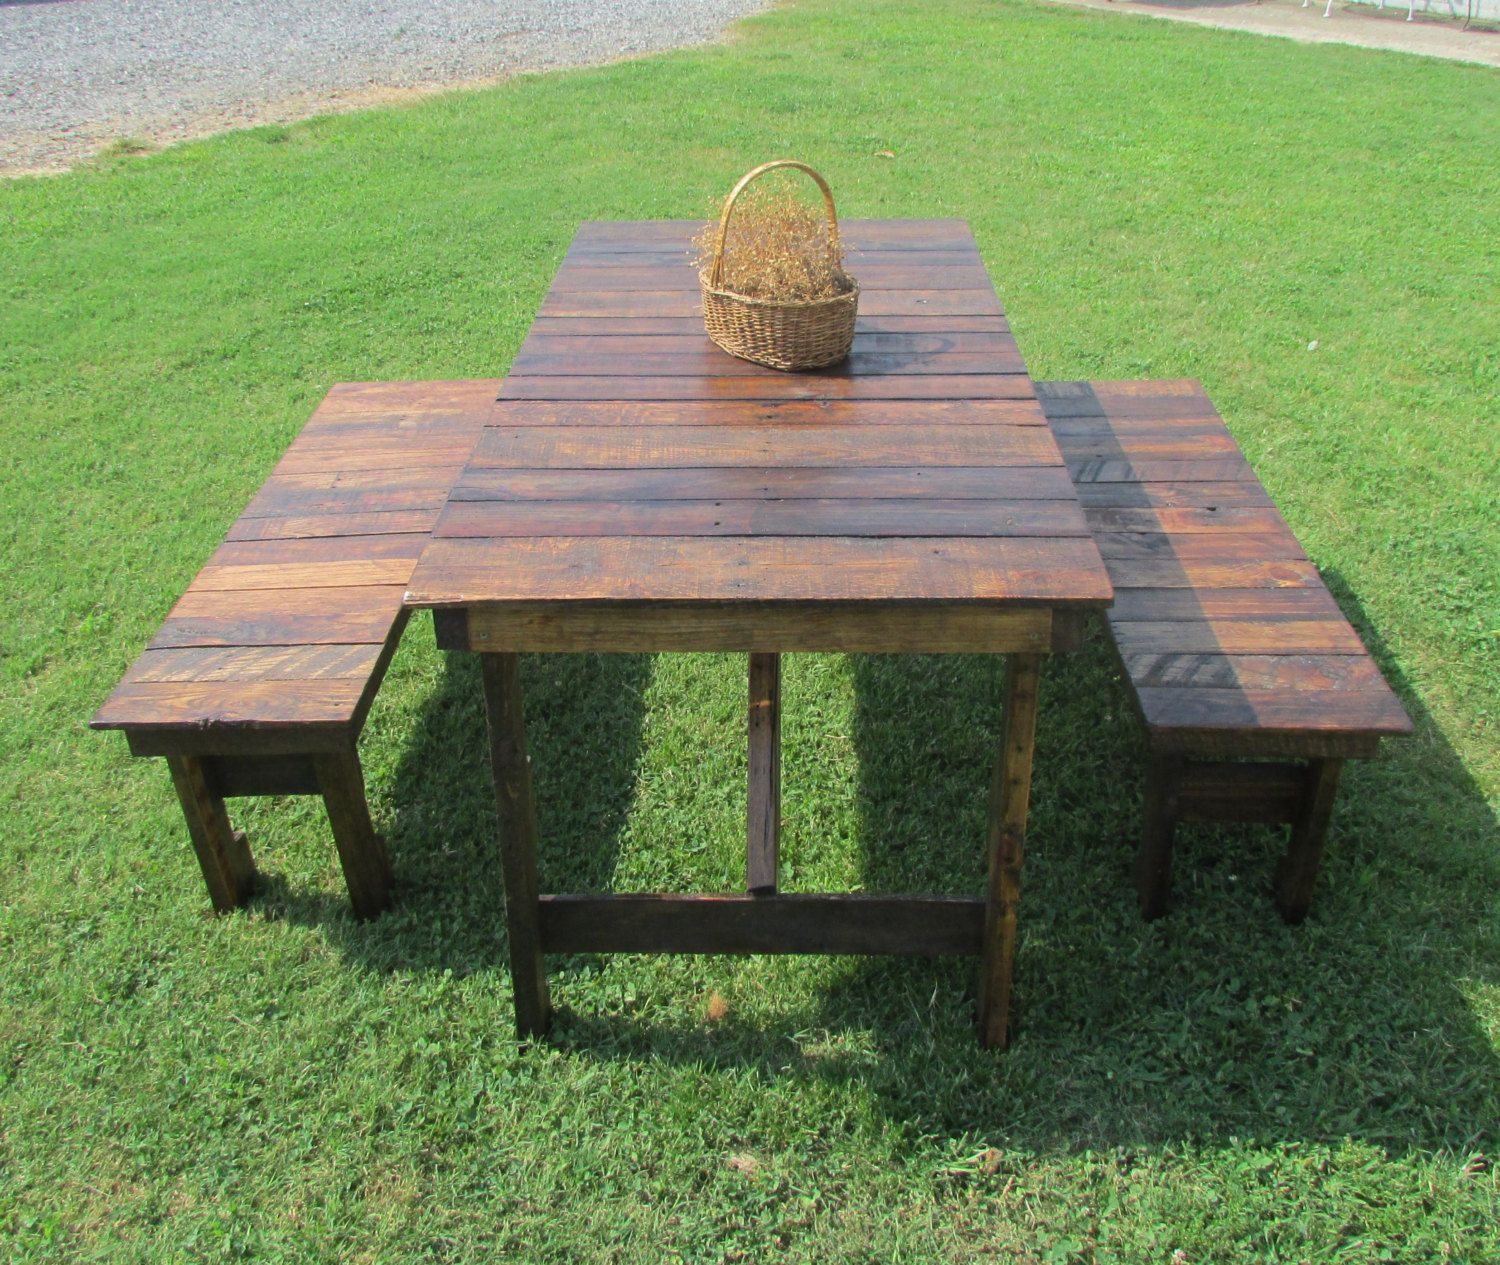 rustic wooden outdoor furniture. This Is A Handmade Rustic Picnic Table And 2-bench Set That Made Out Of Reclaimed Wood (mixture White Oak, Red Hickory, Poplar And/or Ash). Wooden Outdoor Furniture K